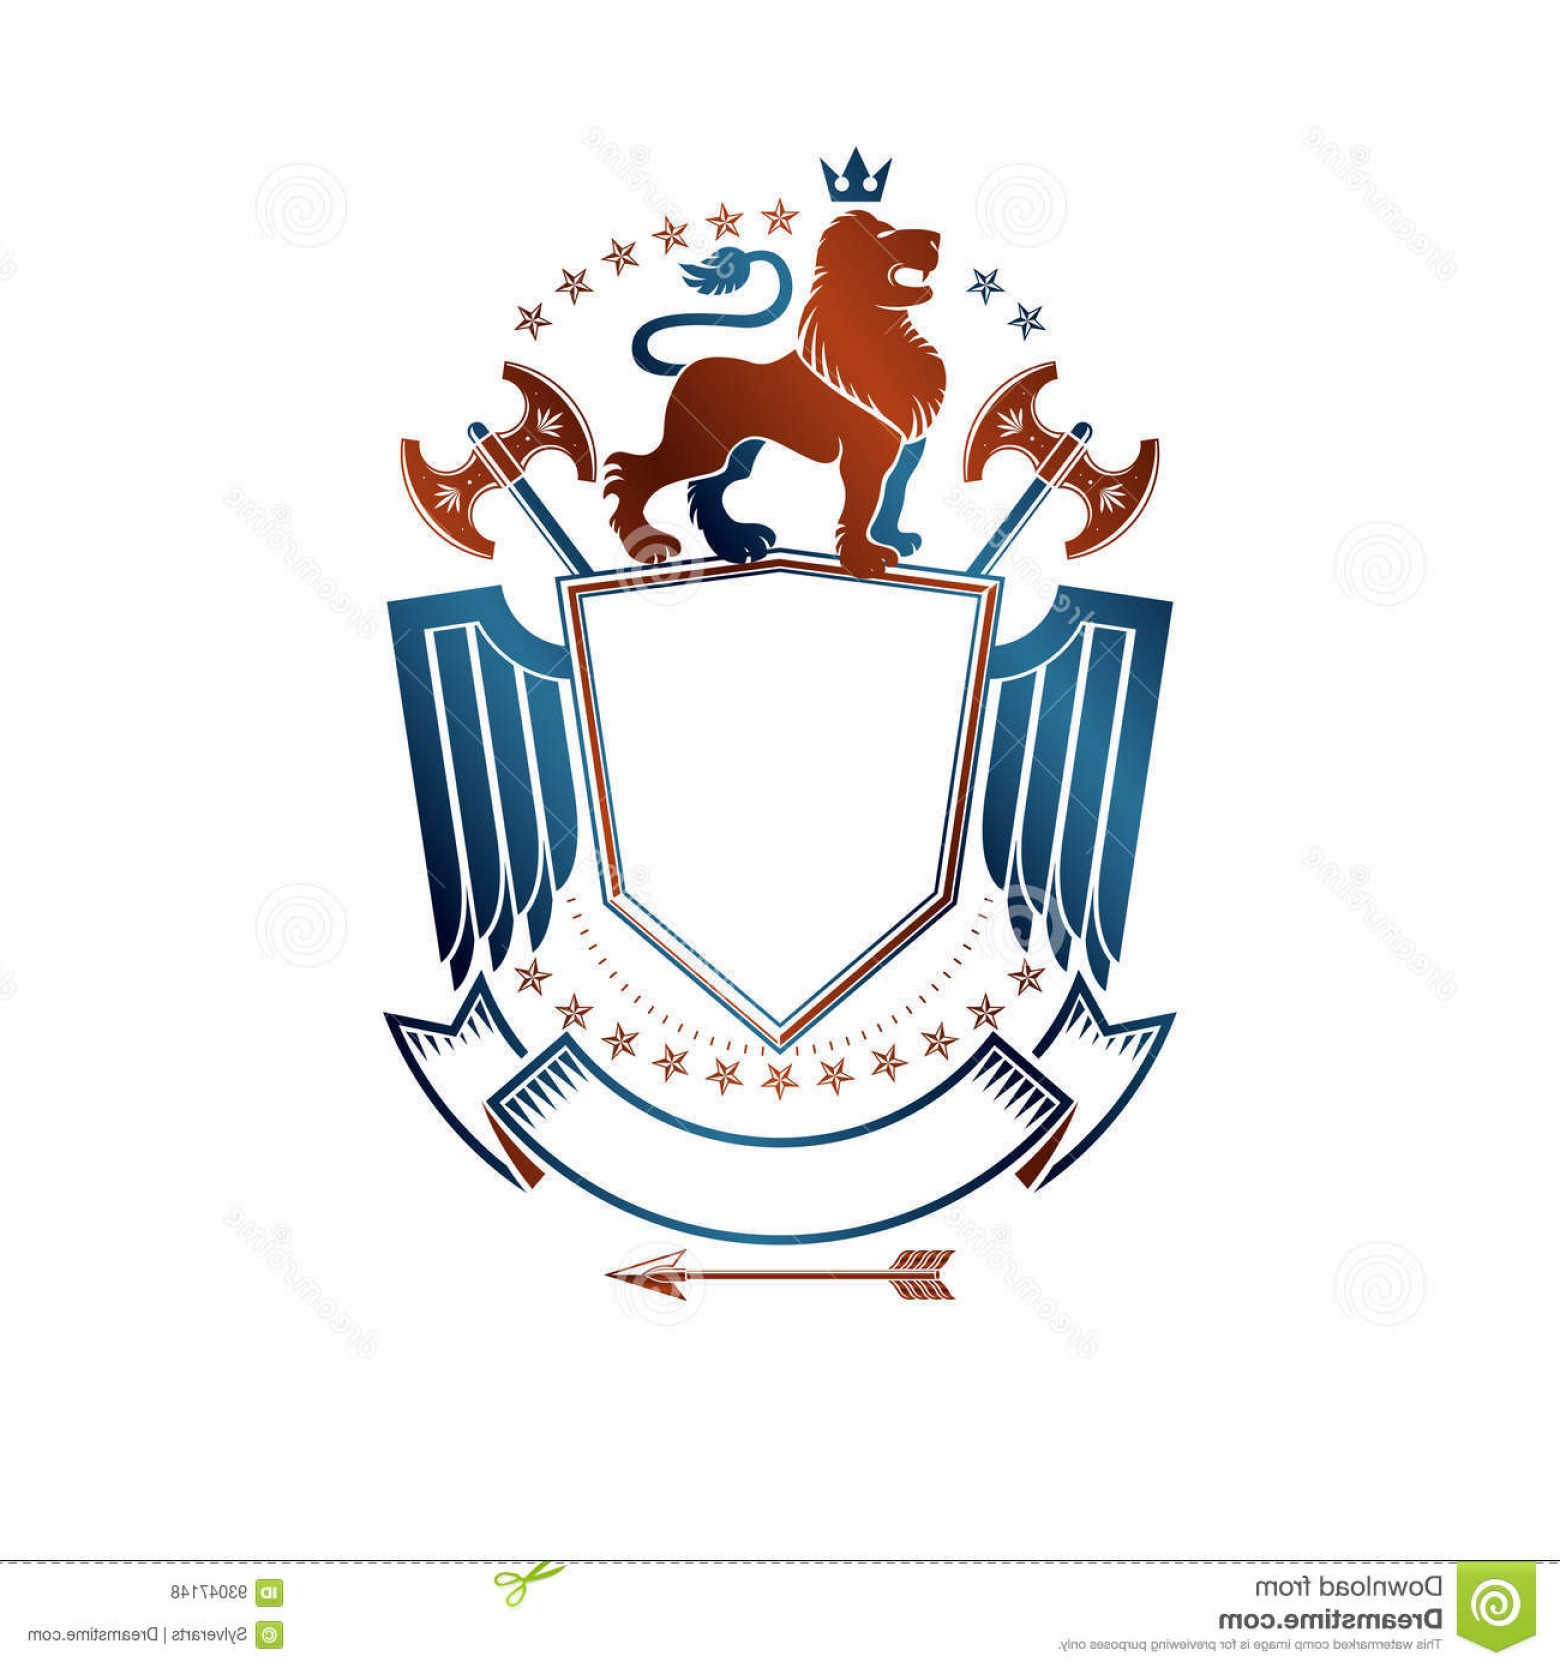 Faith Lions Vector Art Images: Stock Illustration Graphic Emblem Lion Heraldic Animal Element Royal Crown Sharp Hatchets Coat Arms Decorative Logo Isolated Image